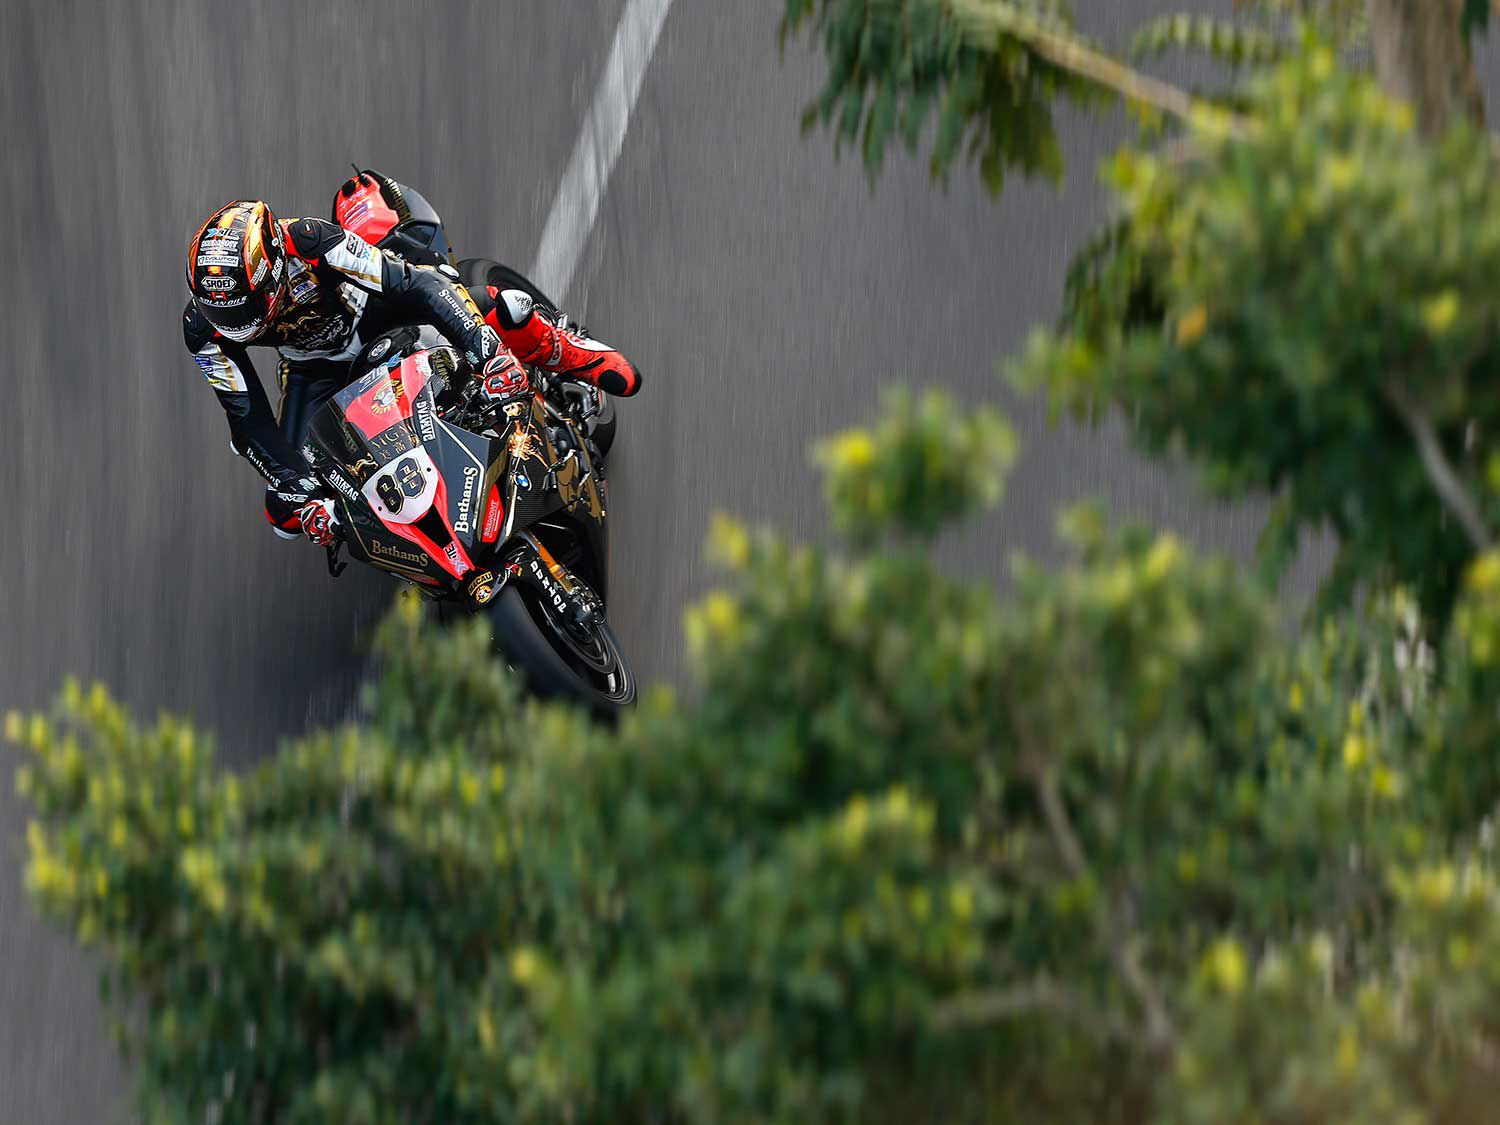 Peter Hickman (BMW Bathams Racing) photographed from the roof of a house on the streets turned racetrack in Macau.